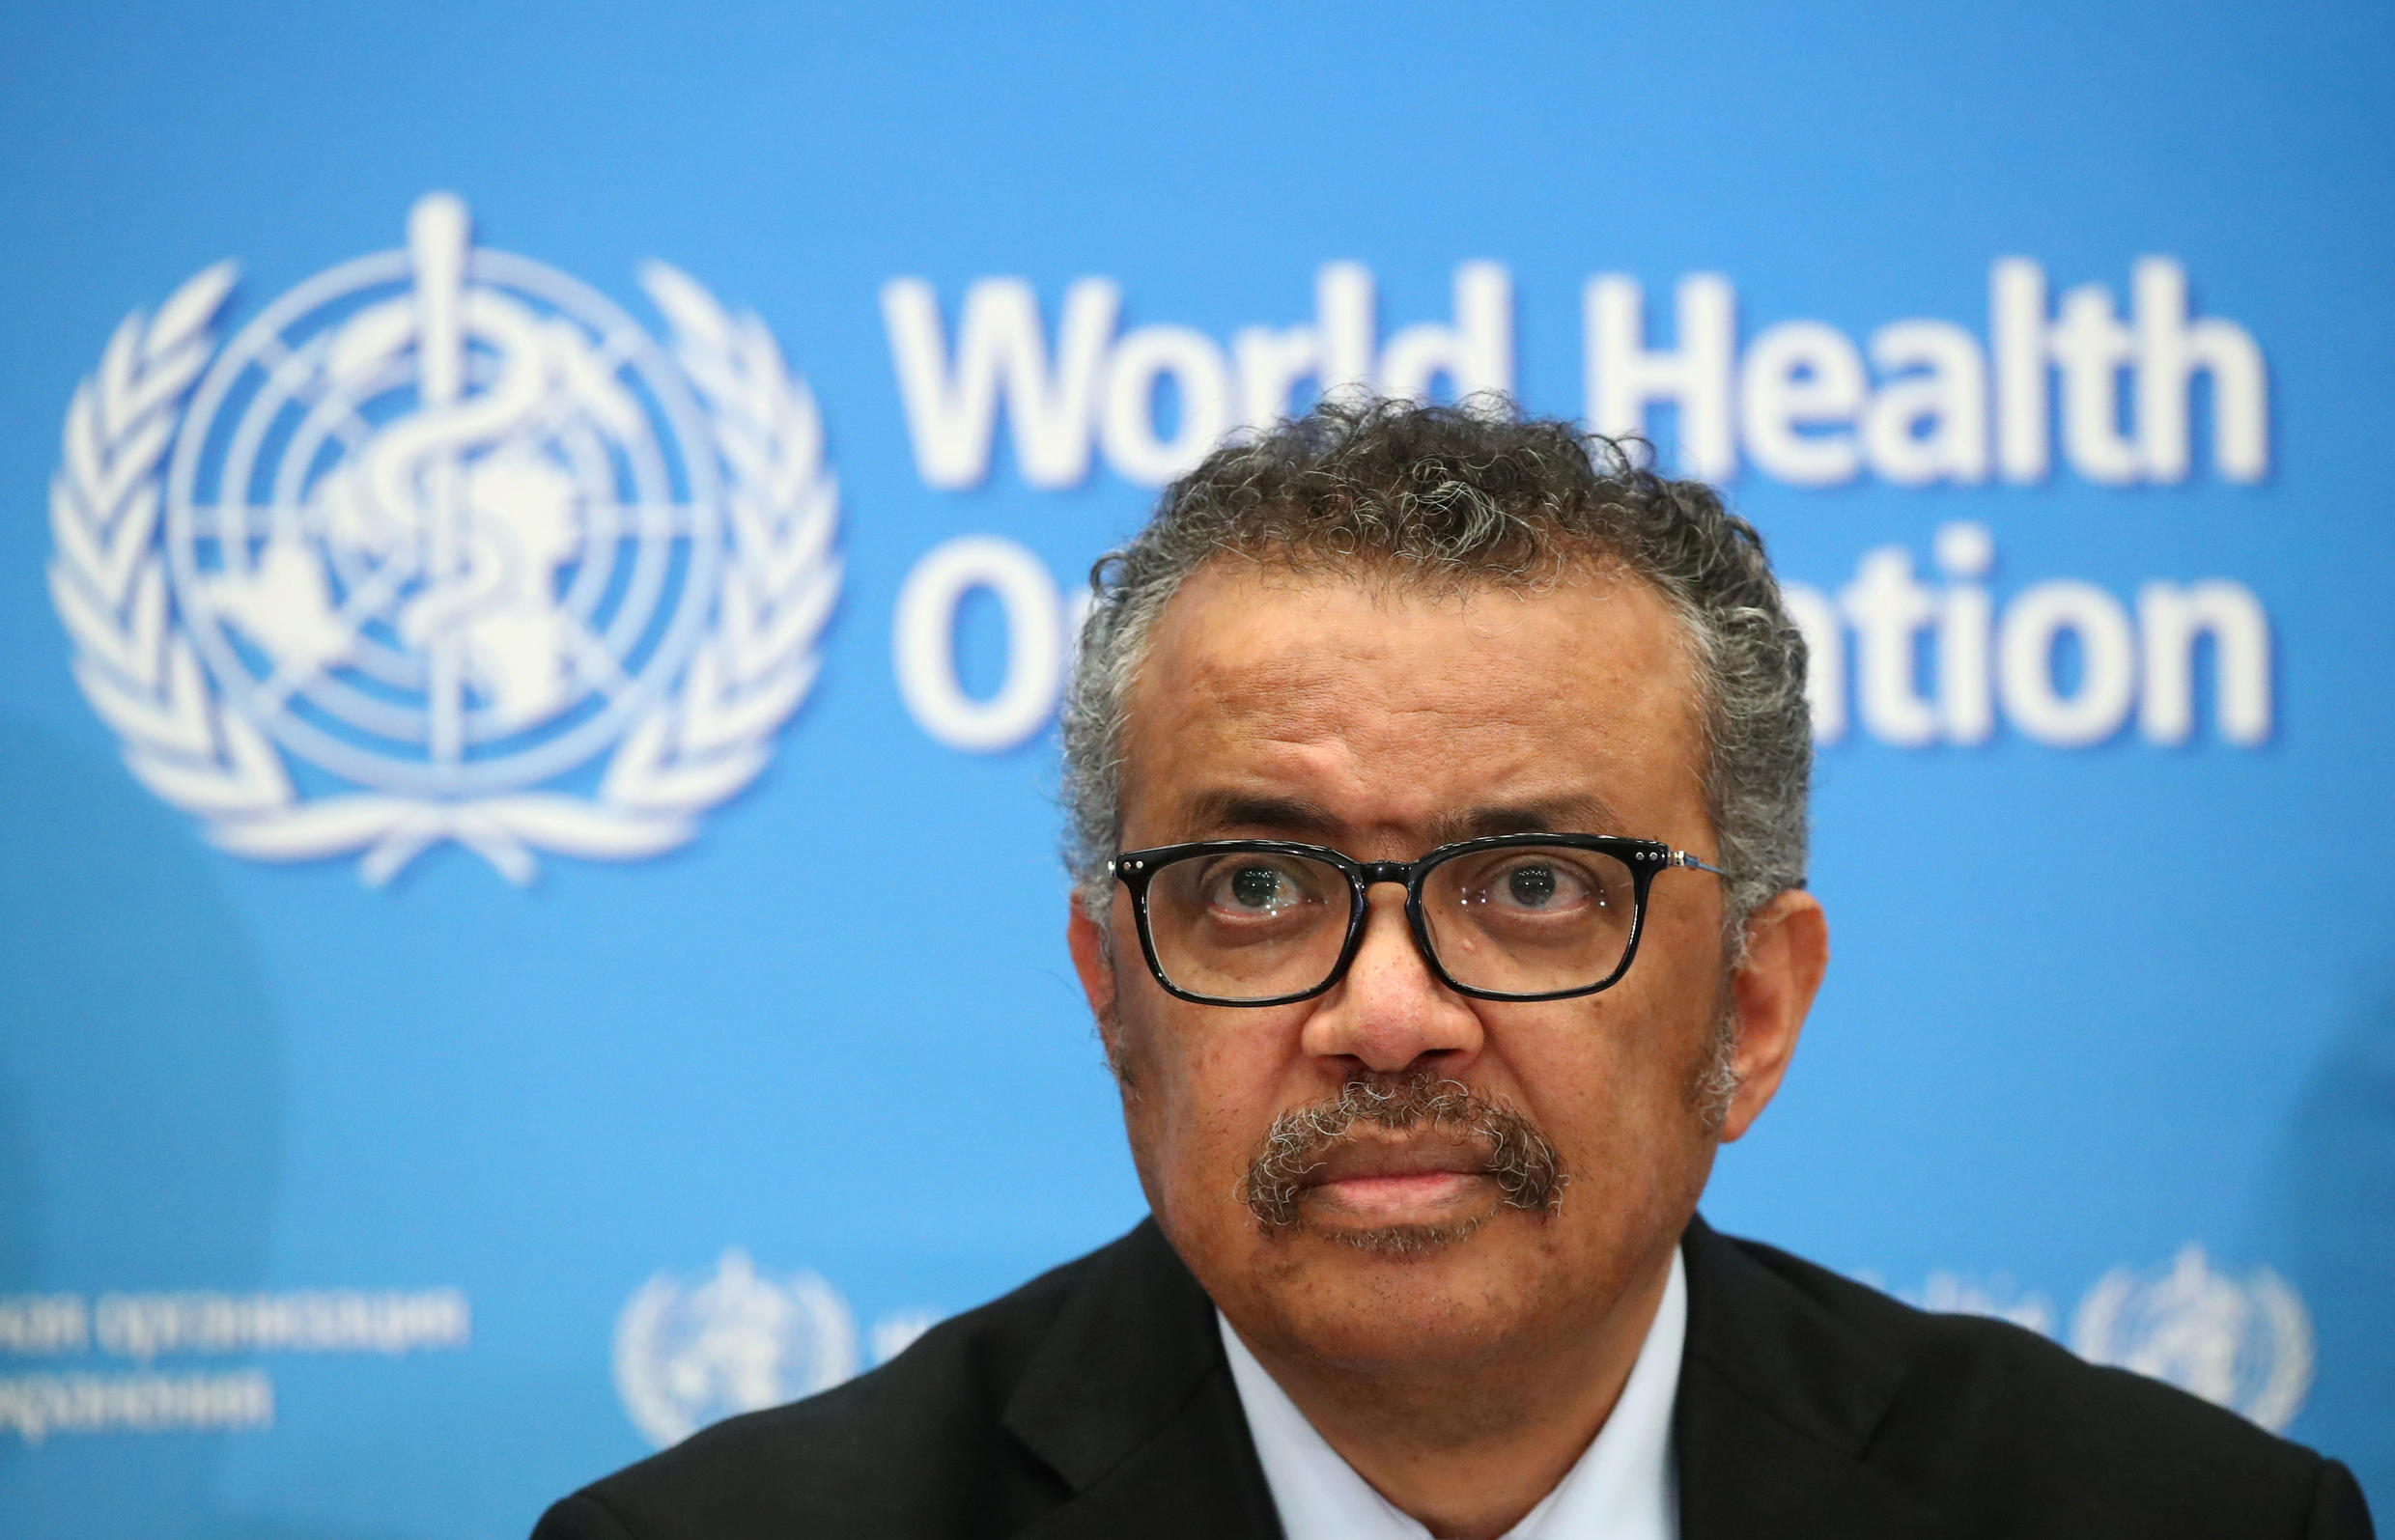 Director-General of the WHO, Tedros Adhanom Ghebreyesus, attends a news conference on the coronavirus in Geneva, Switzerland, February 24, 2020.